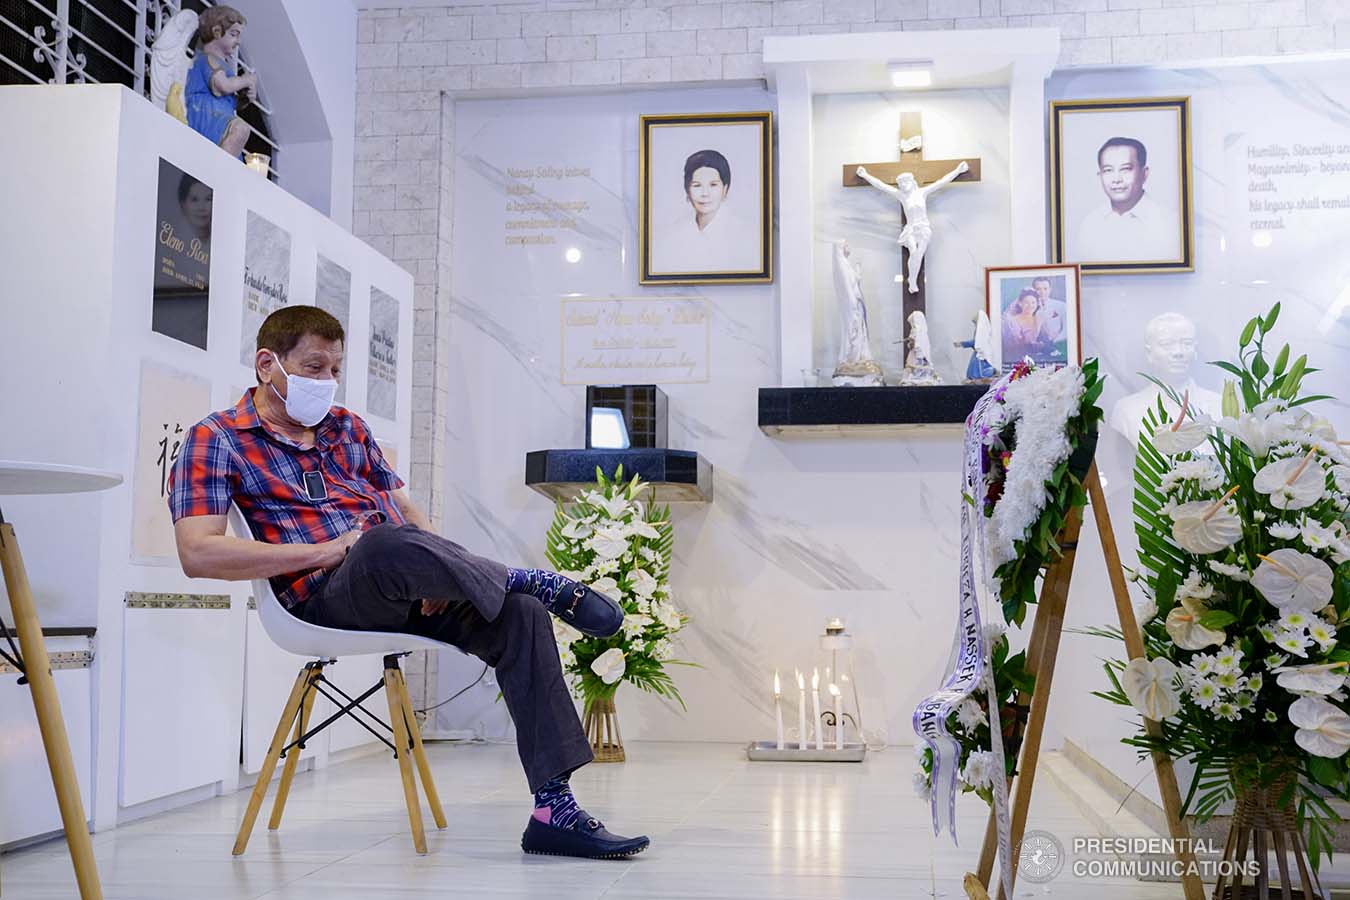 President Rodrigo Roa Duterte visits the resting place of his parents, Vicente Duterte, the former governor of then undivided Davao Province, and Soledad Duterte, one of Davao's respected civic leaders, at the Roman Catholic Cemetery in Davao City on October 28, 2020. The President, as an annual tradition, visits the family mausoleum during All Saints or All Souls Day even when he was still mayor of Davao City. JOEY DALUMPINES/PRESIDENTIAL PHOTO